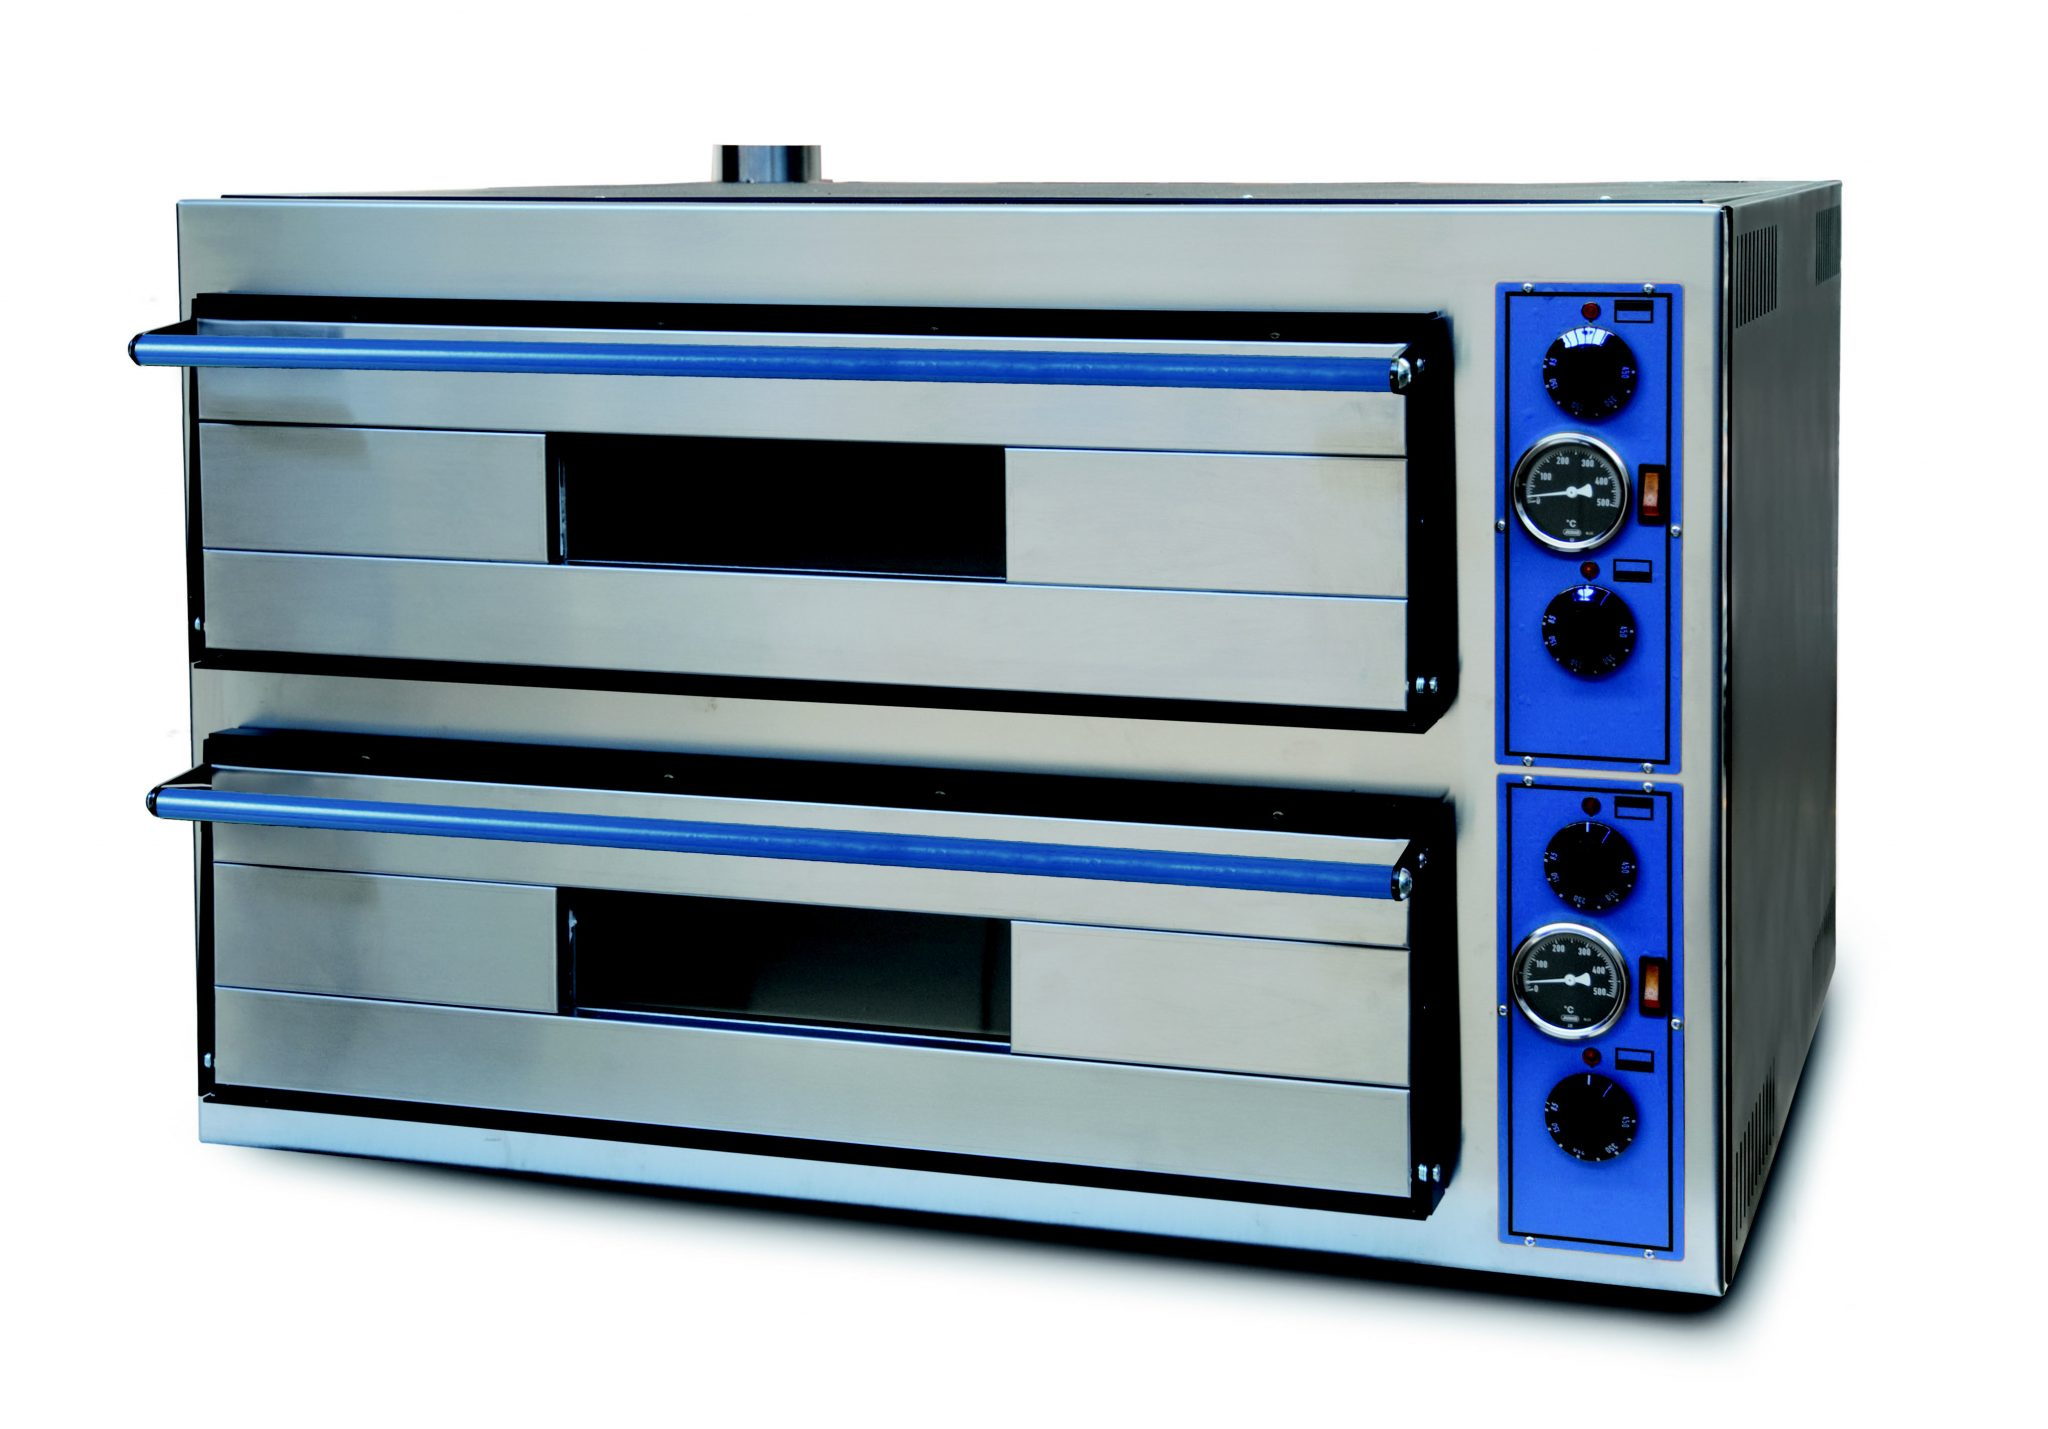 Electric pizza oven model SP 44